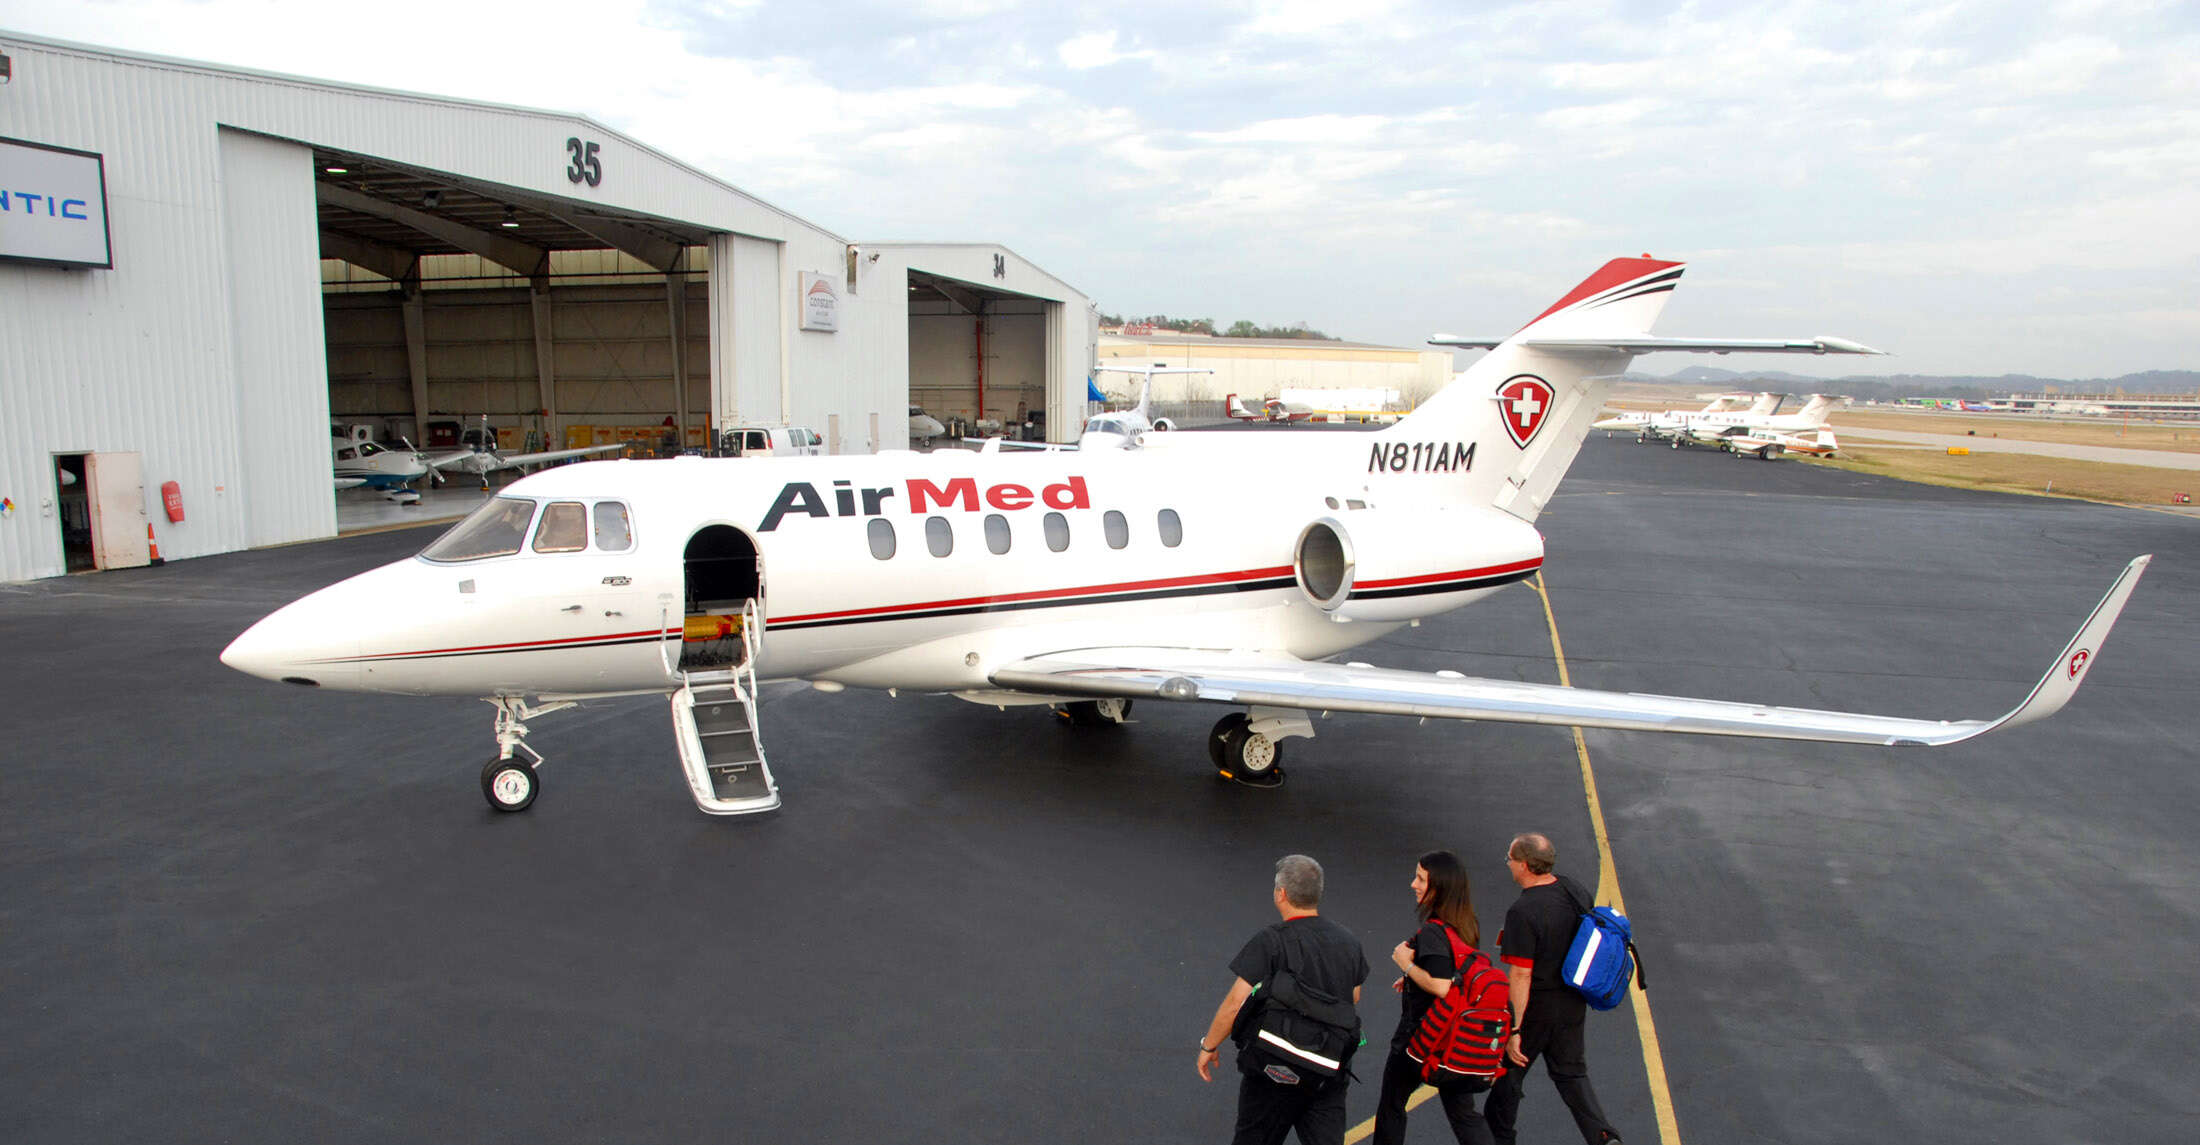 Isle Travel customers can now have peace of mind by taking advantage of owner/operator AirMed air ambulance plans.